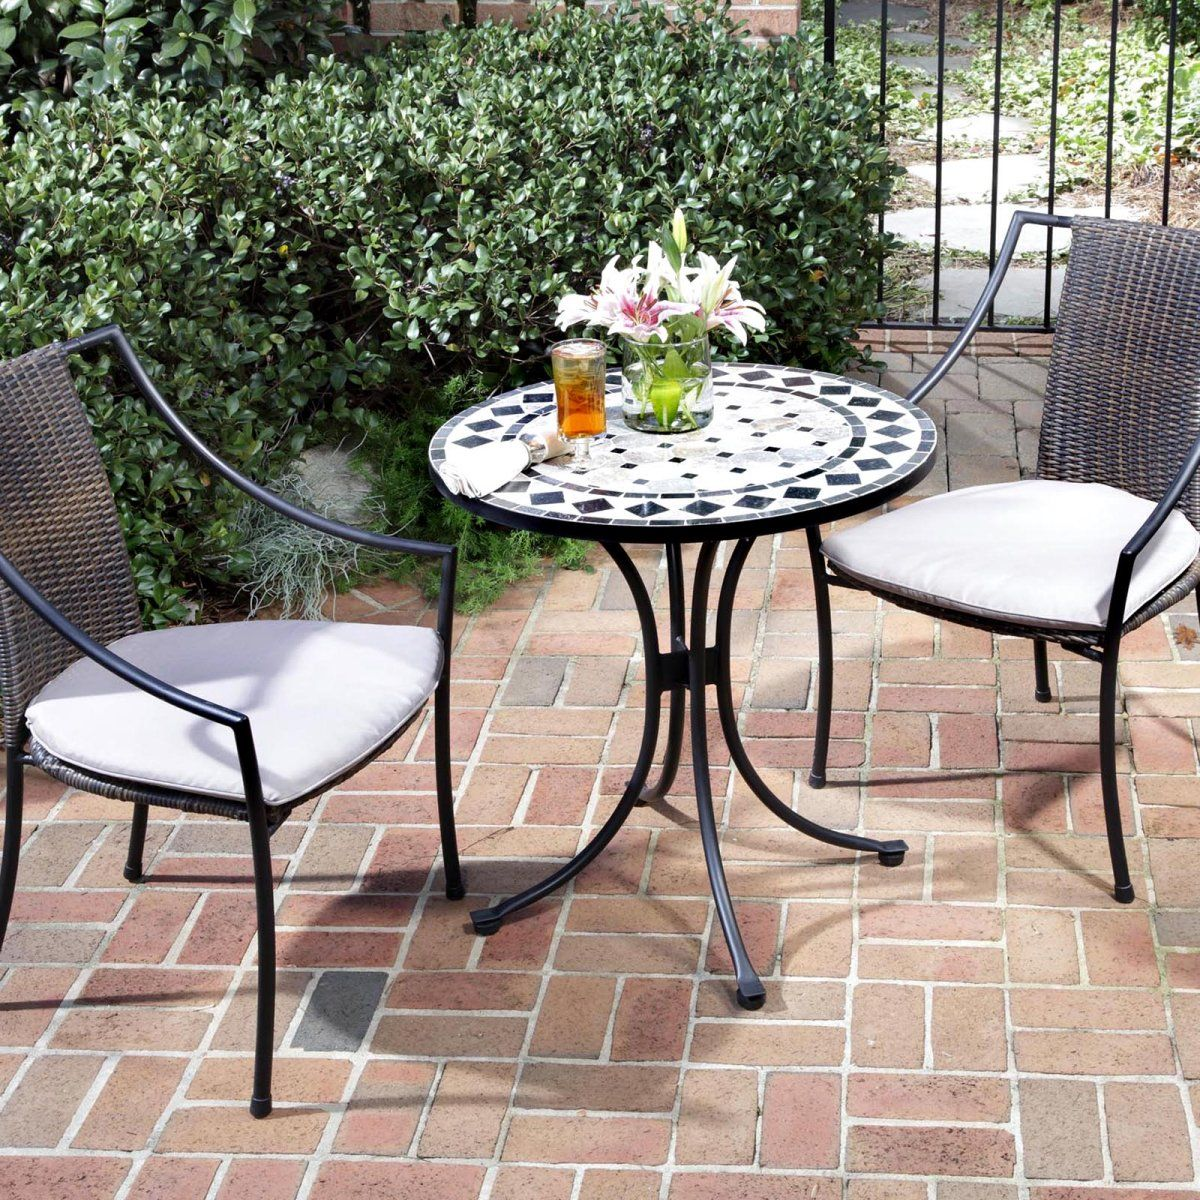 Table For Two Small Patio Home Decor Marble Bistro Table Patio Furniture Sets Patio Dining